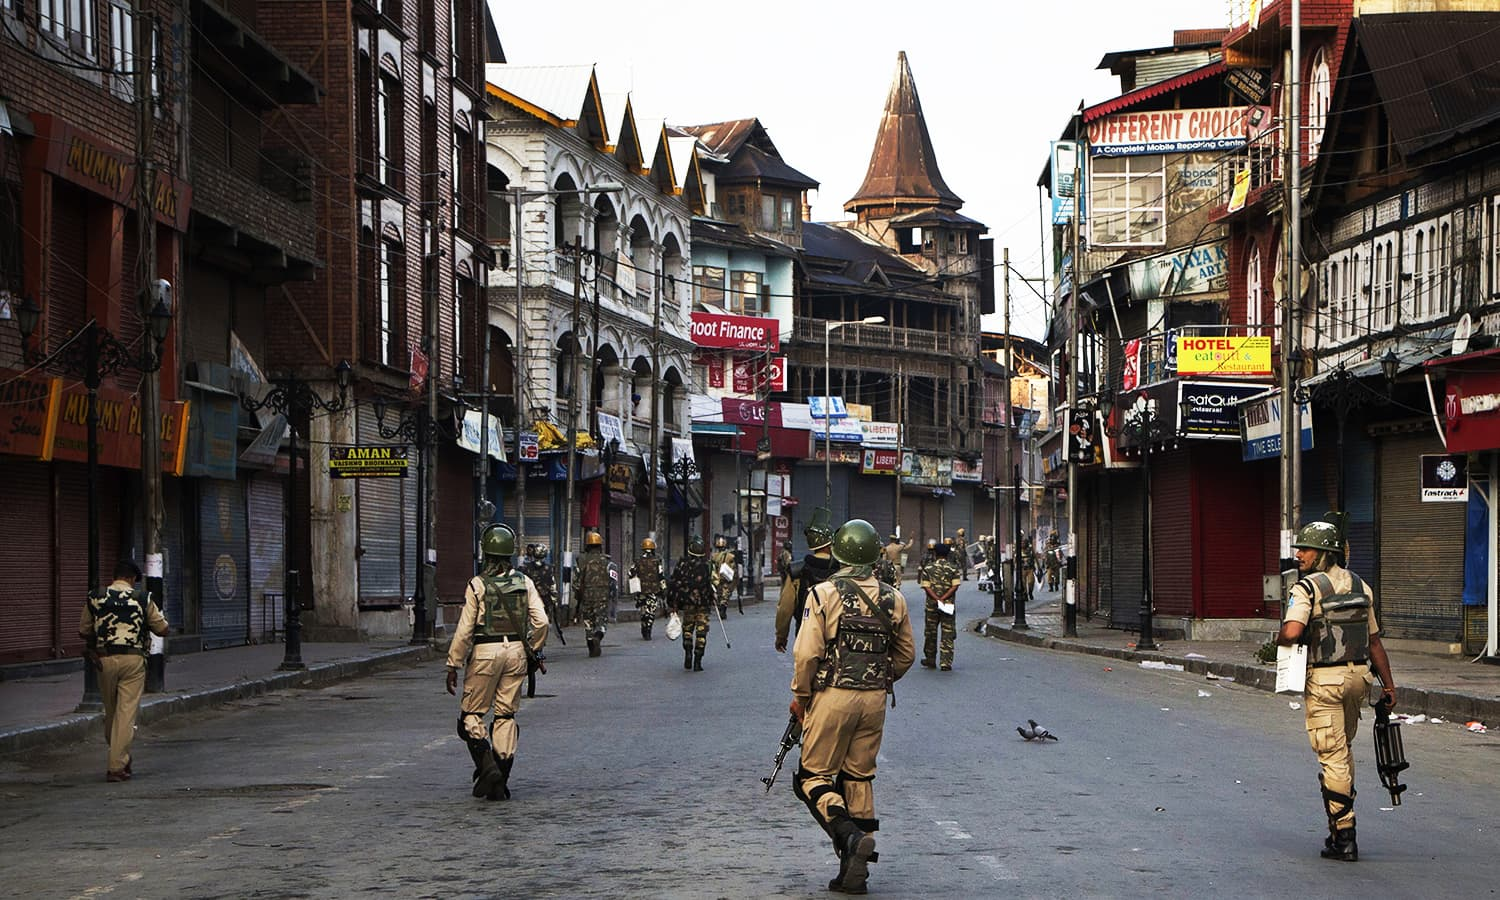 Indian paramilitary soldiers patrol a deserted street during curfew in Srinagar, India-held Kashmir, Tuesday, Sept. 13, 2016. ─ AP